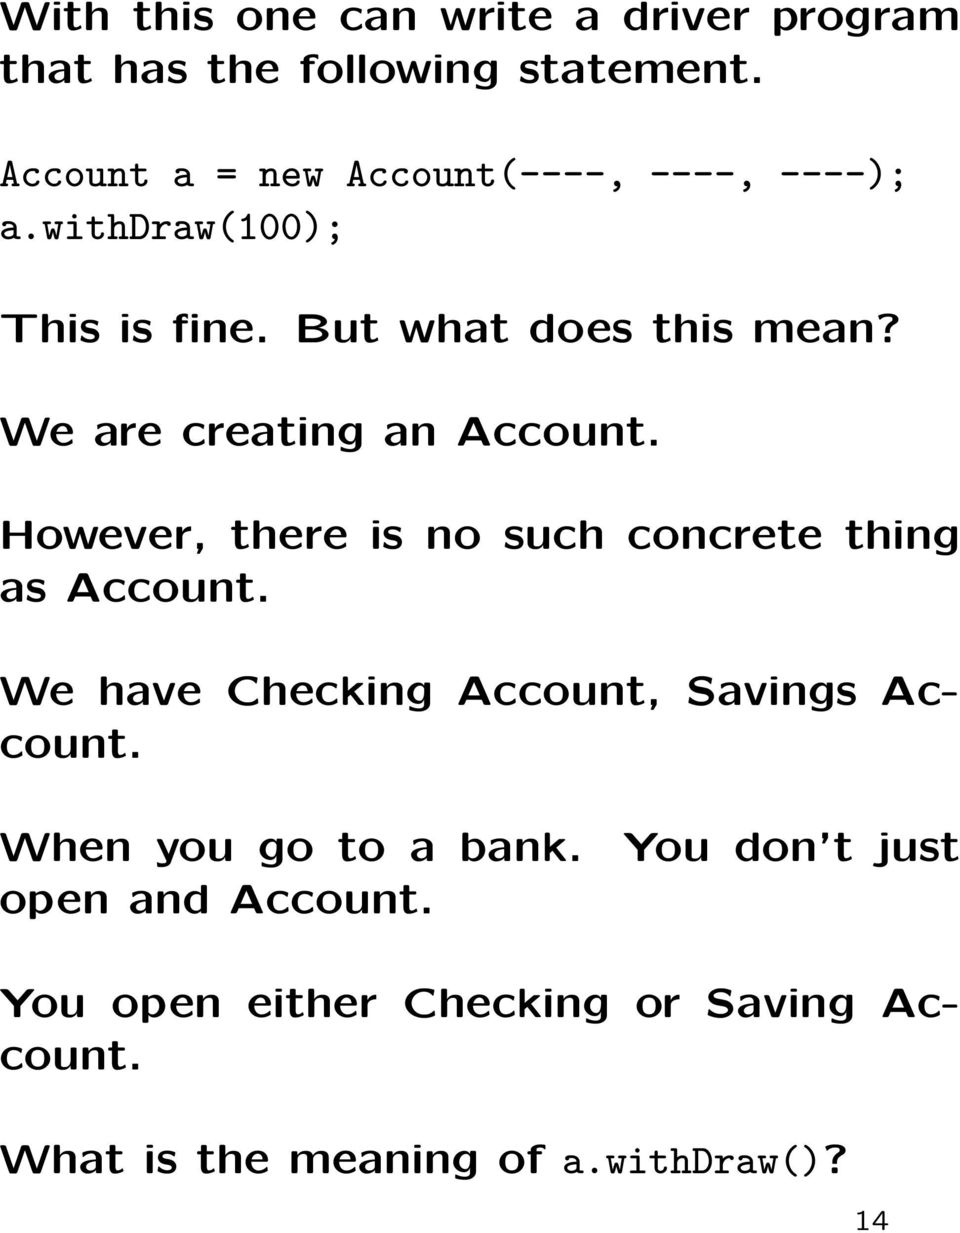 We are creating an Account. However, there is no such concrete thing as Account.